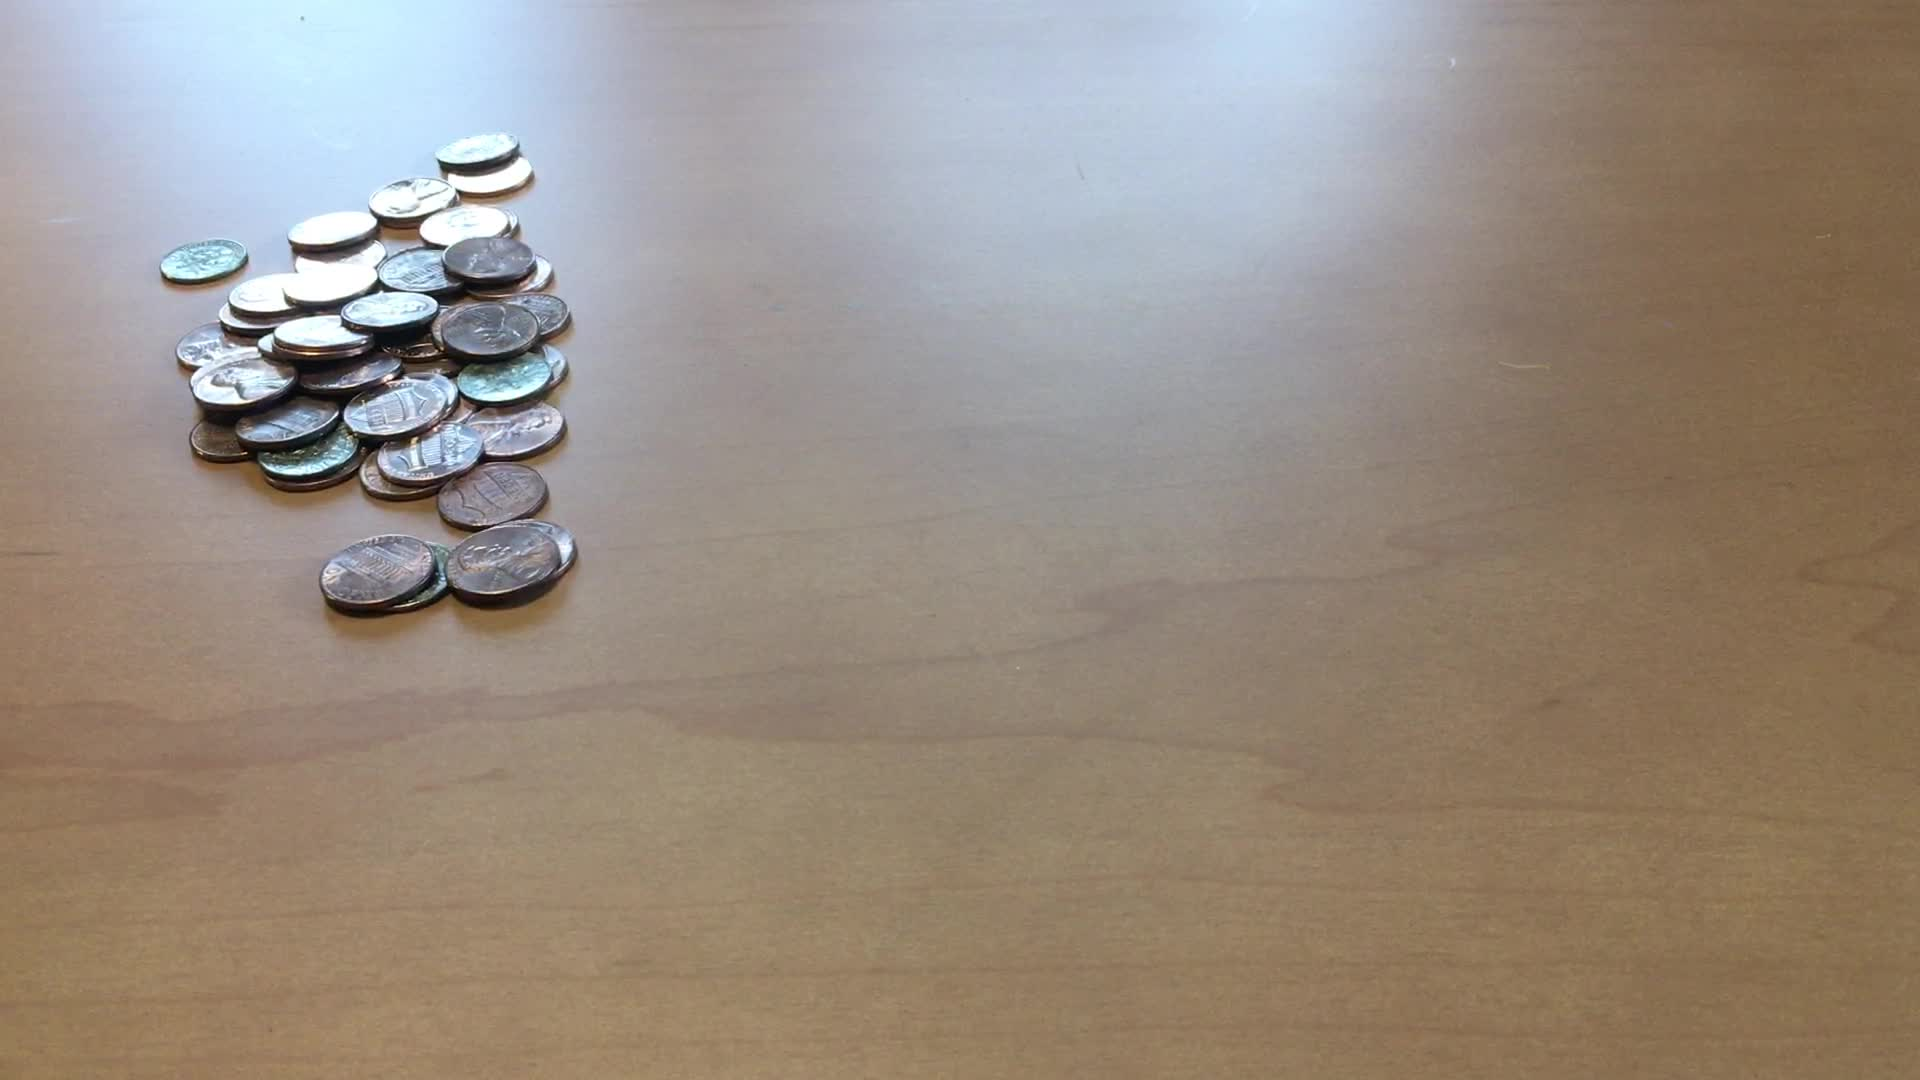 Coffee Can Coins